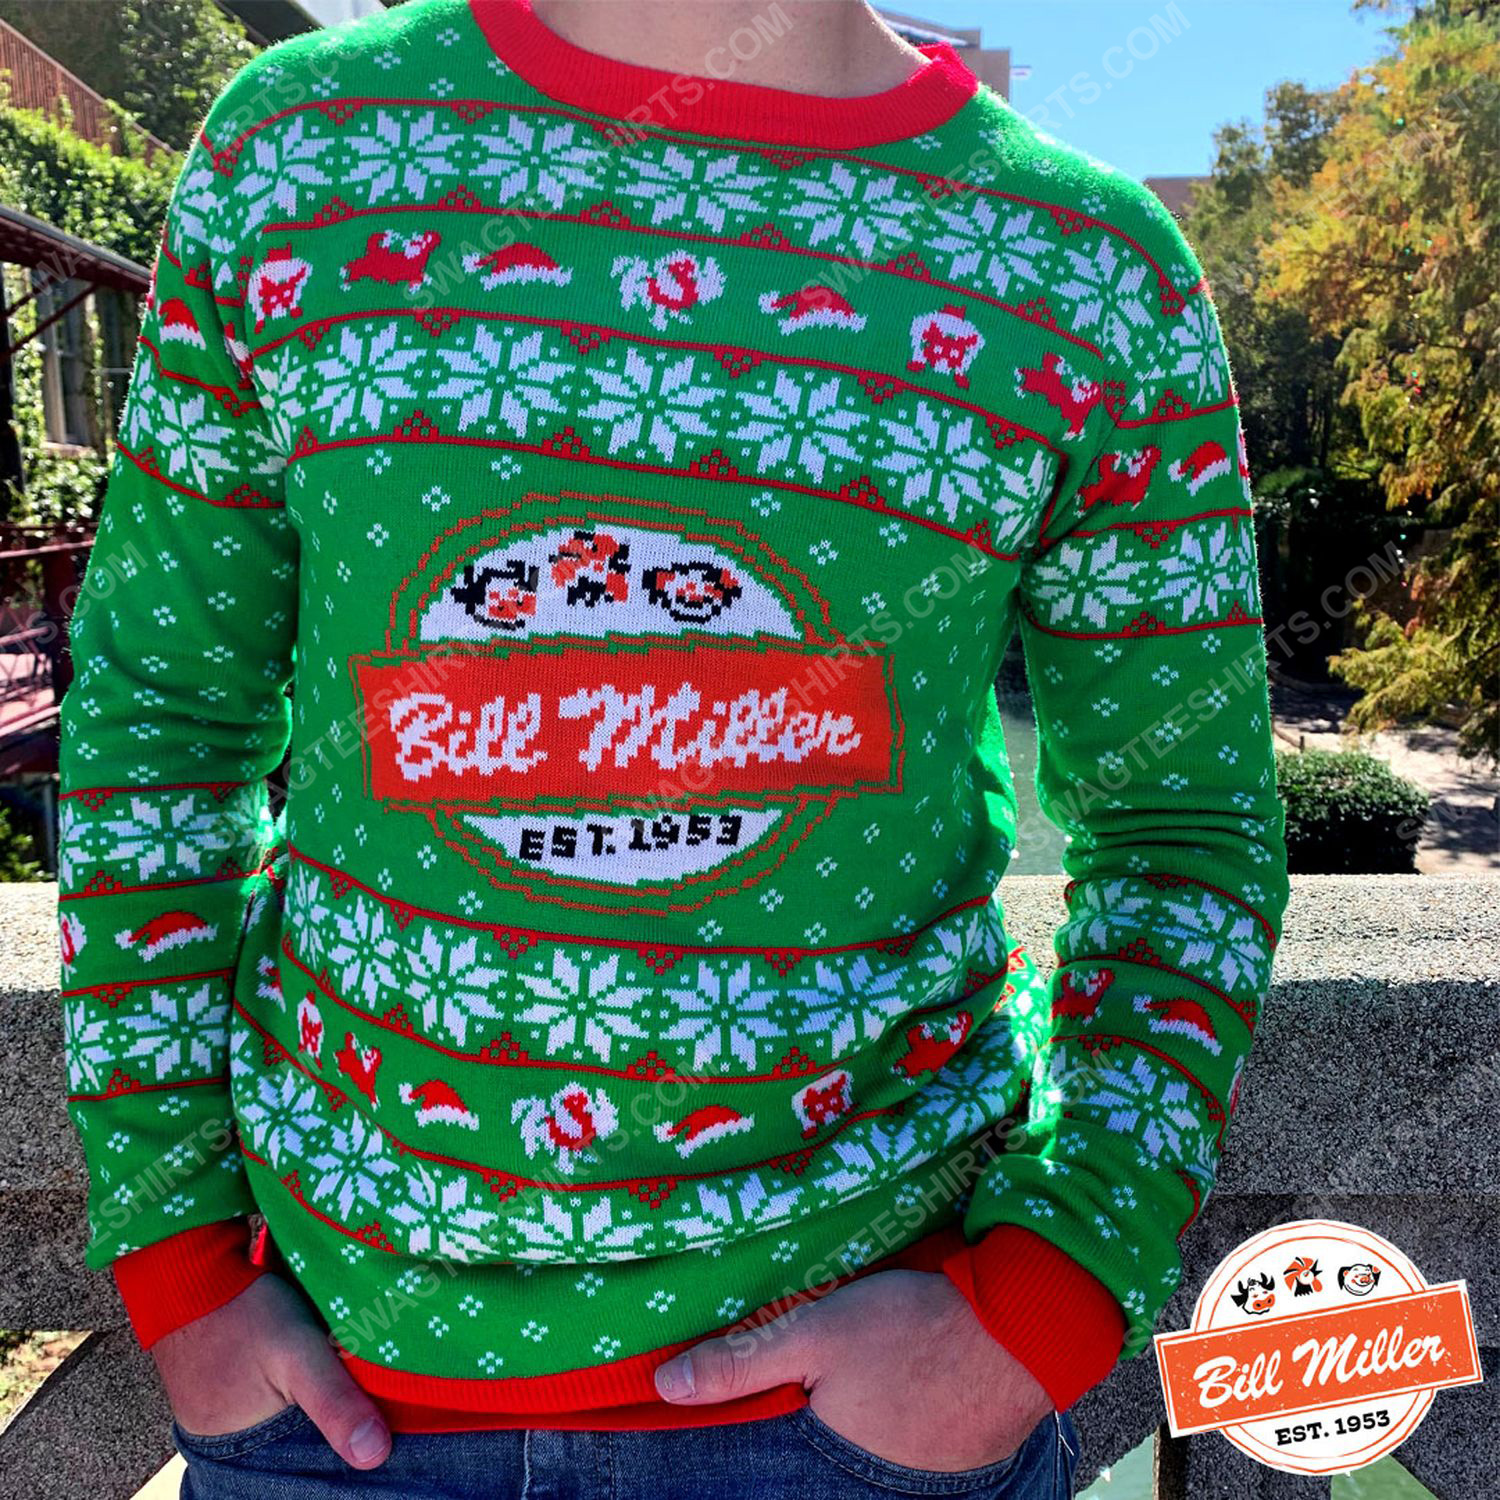 Bill miller full print ugly christmas sweater 2 - Copy (2)